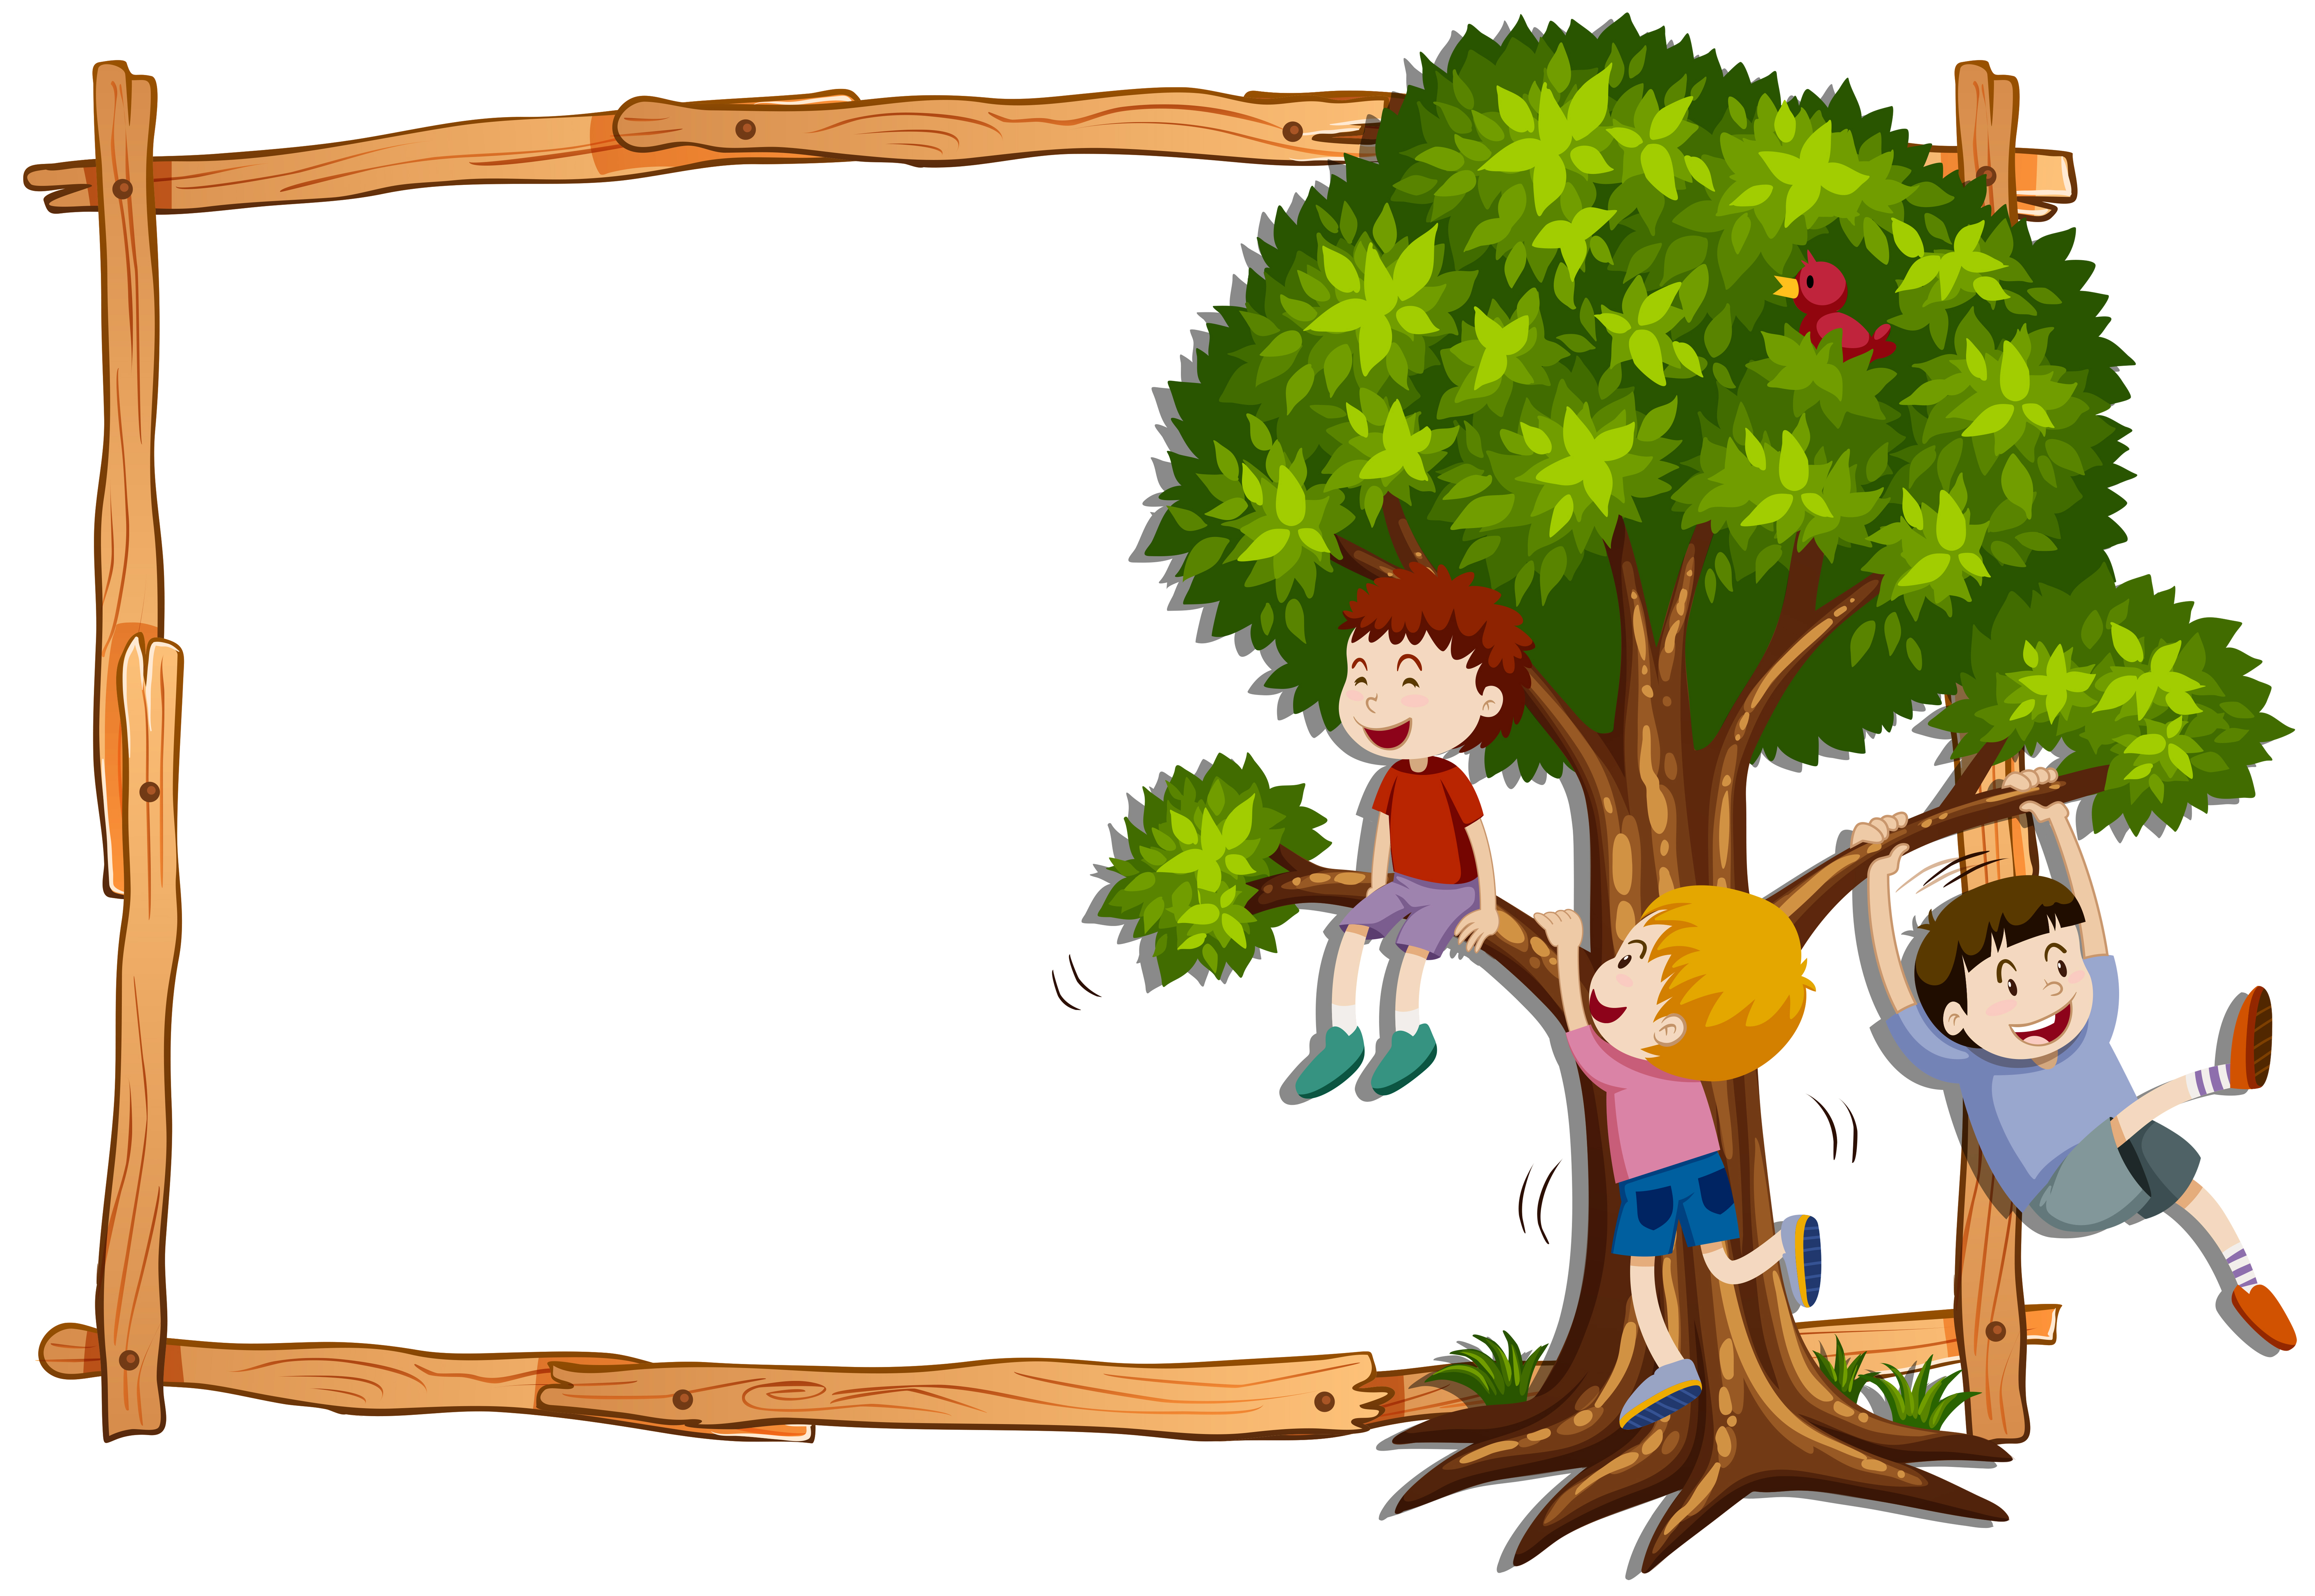 Frame template with kids climbing the tree - Download Free ...